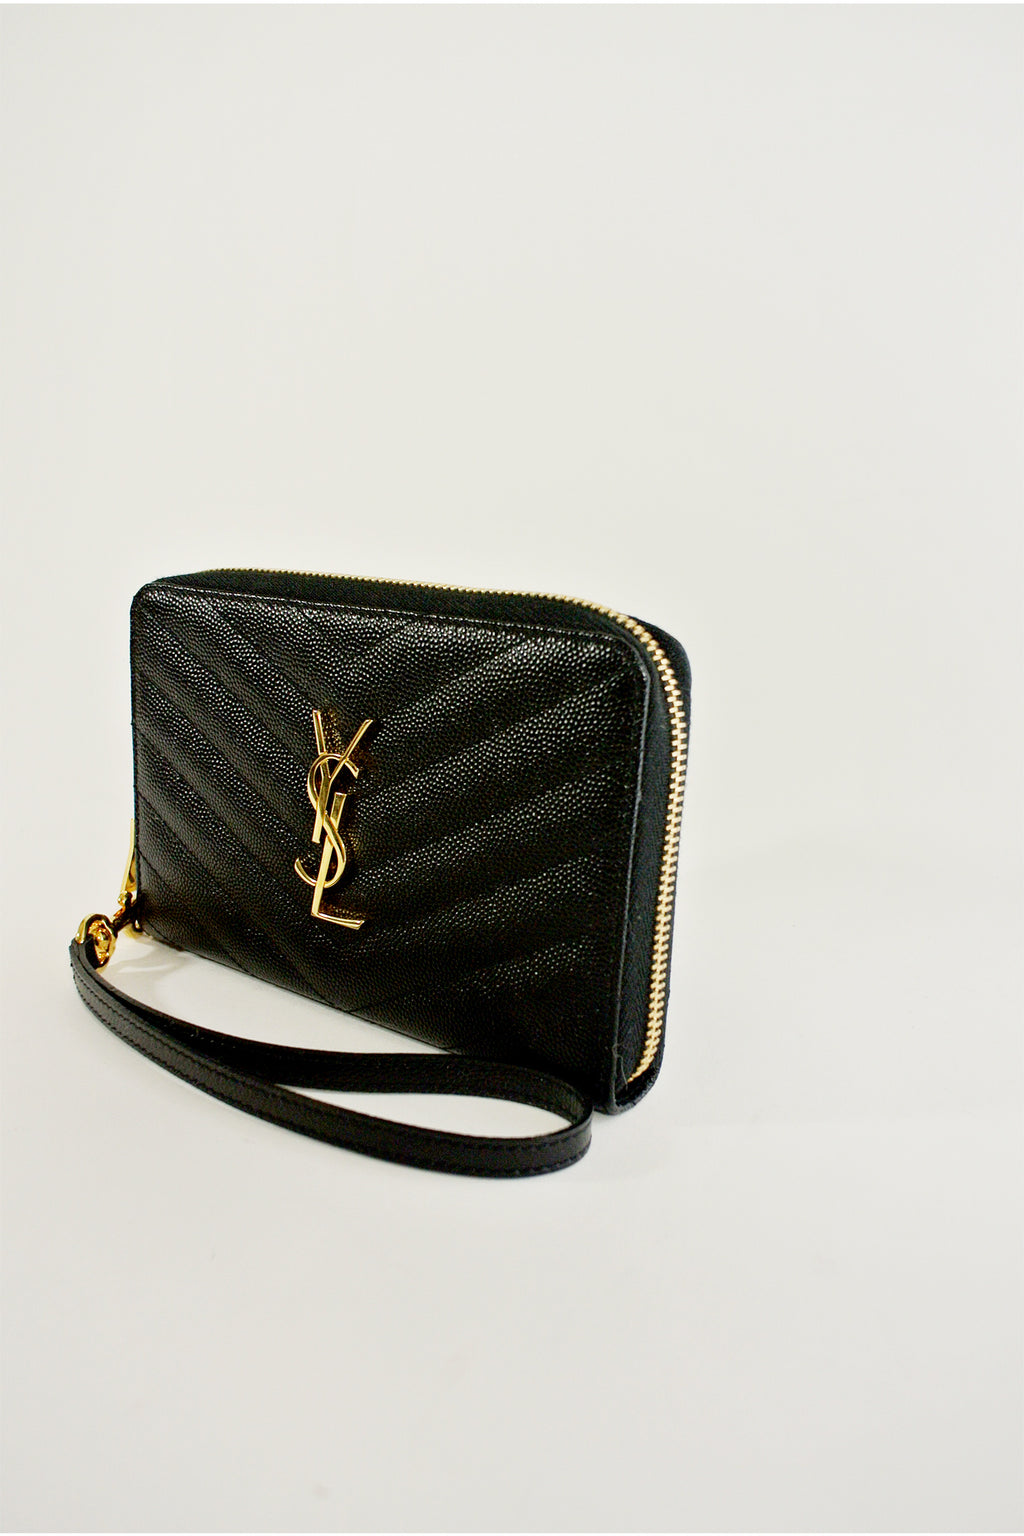 Saint Laurent Black Kate Wristlet